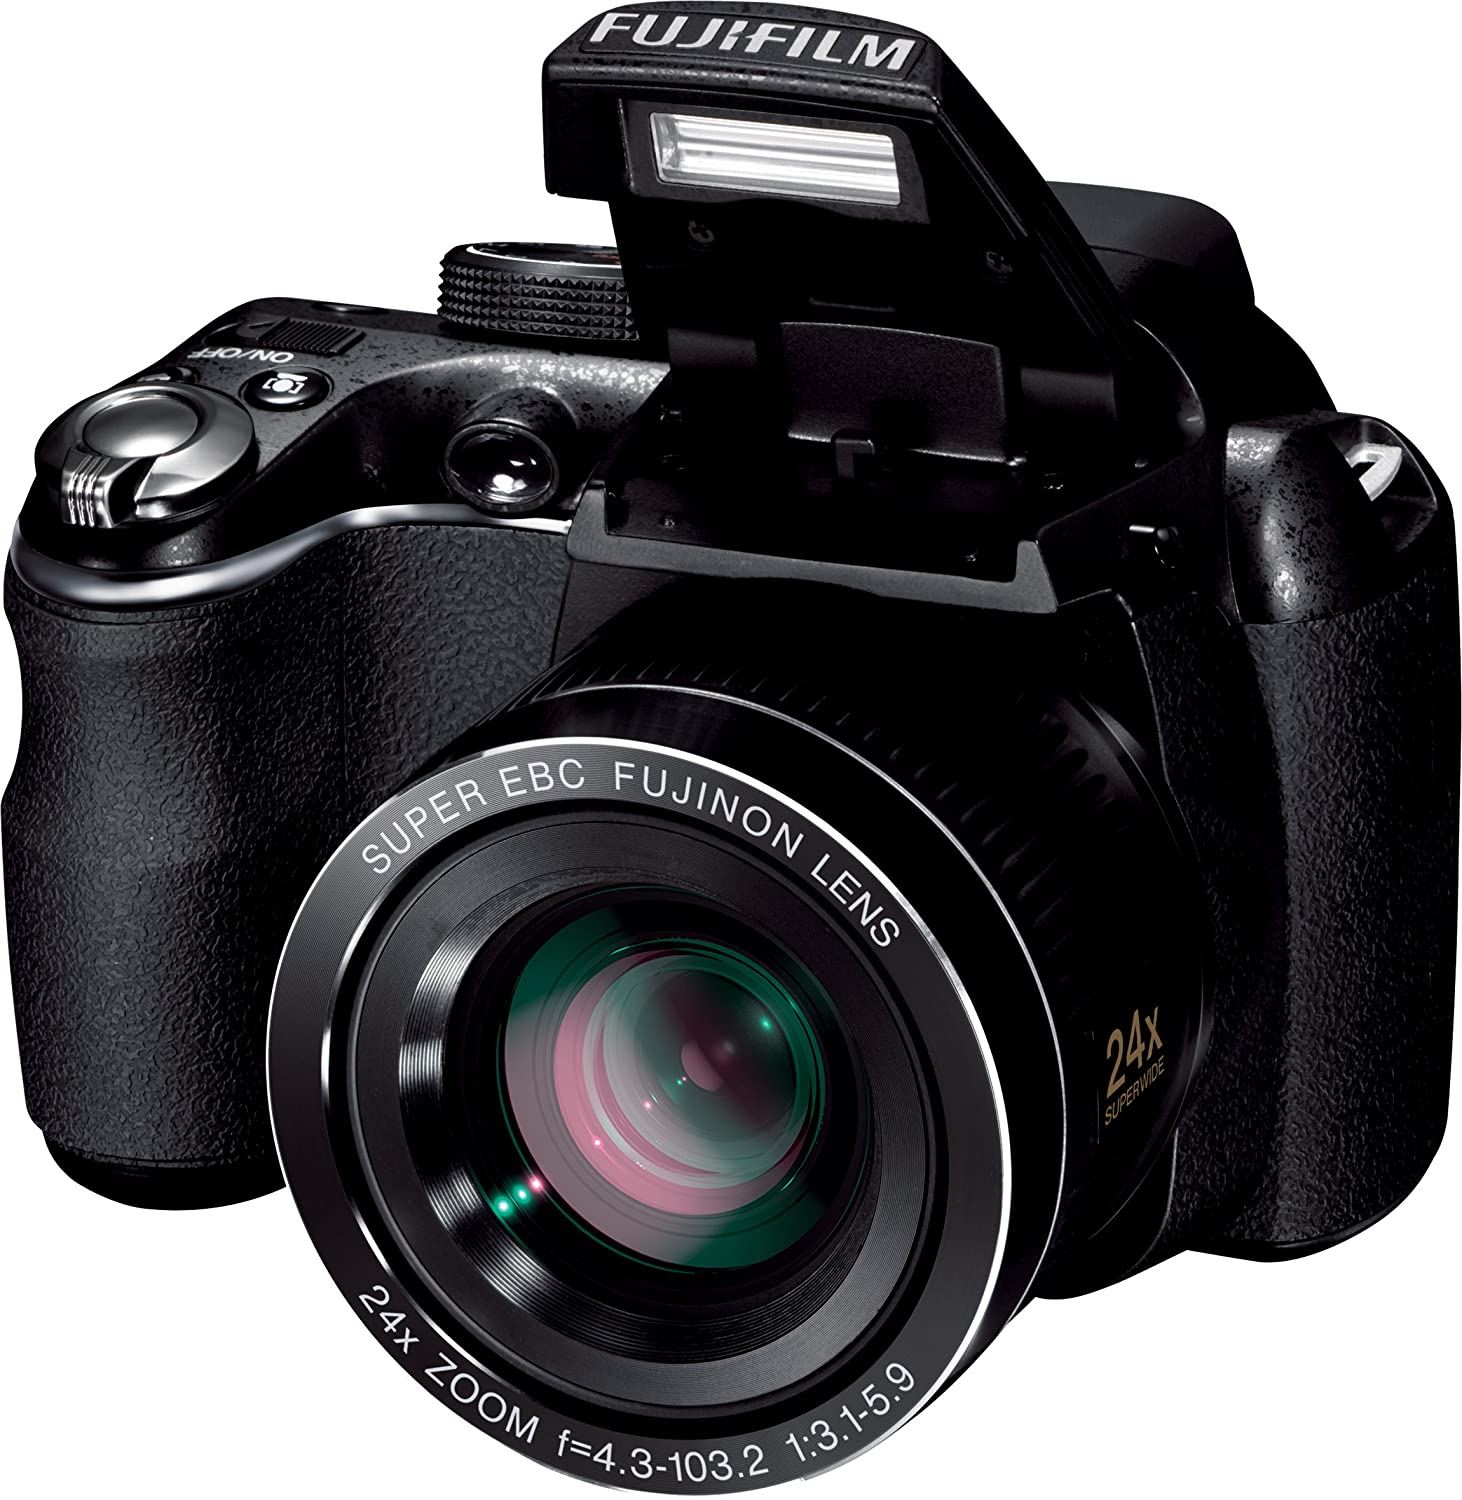 Amazon.com : Fujifilm FinePix S3200 14 MP Digital Camera with Fujinon 24x  Super Wide Angle Optical Zoom Lens and 3-Inch LCD : Point And Shoot Digital  ...